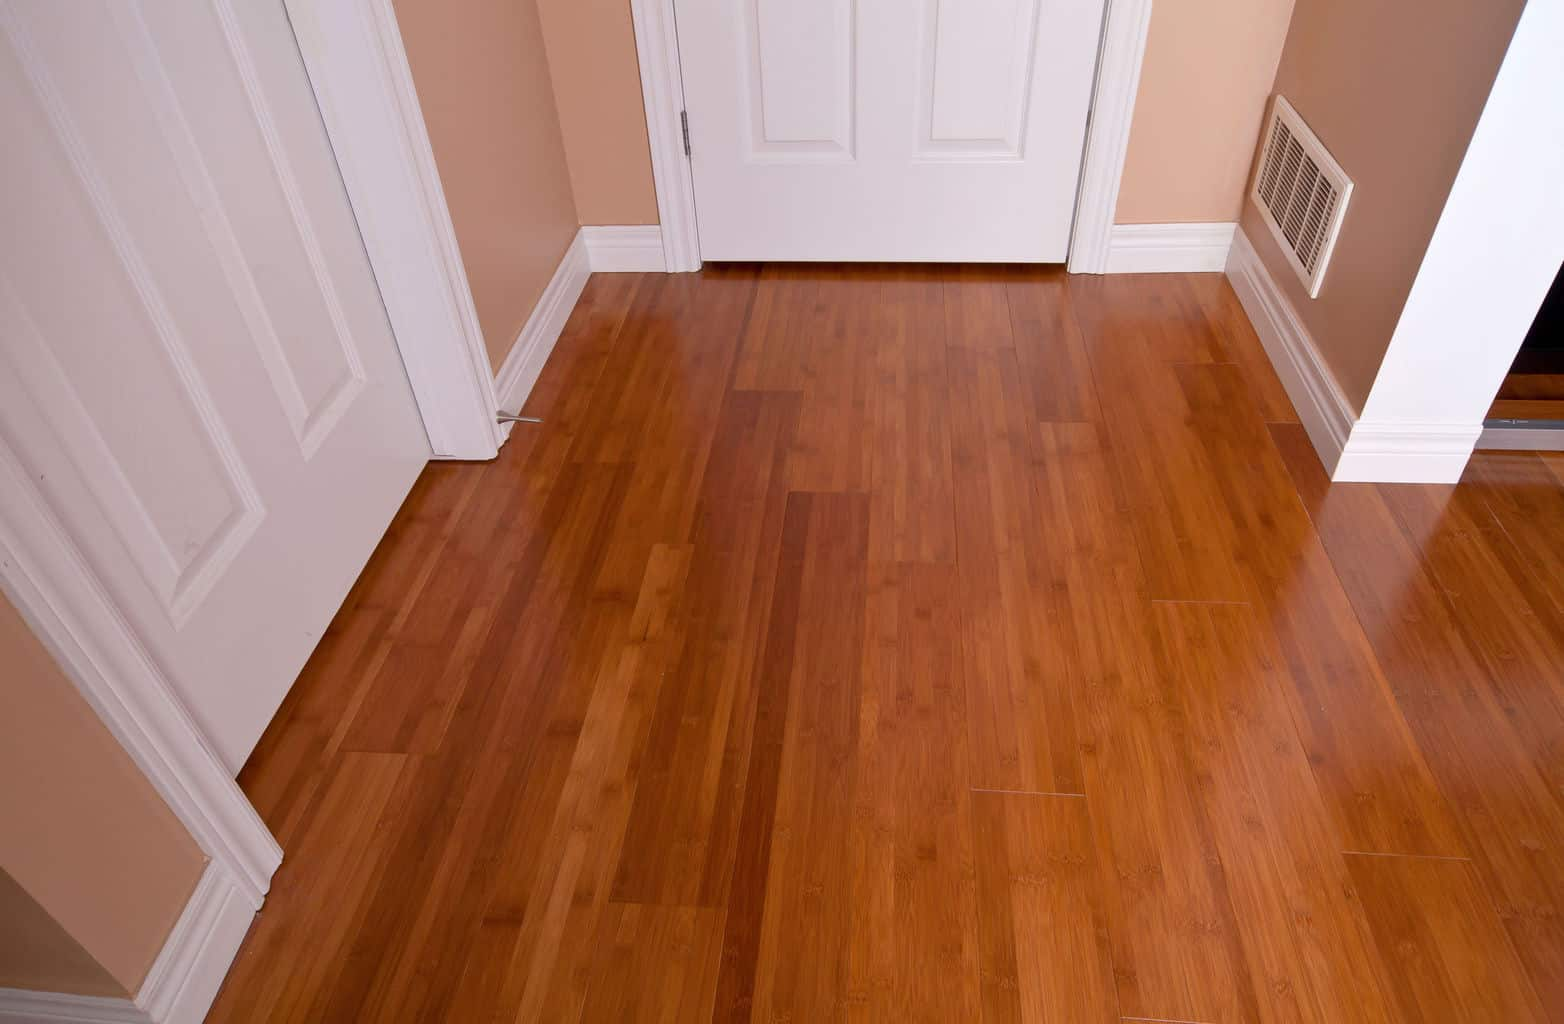 Bamboo vs Hardwood Flooring A Side By Side parison The